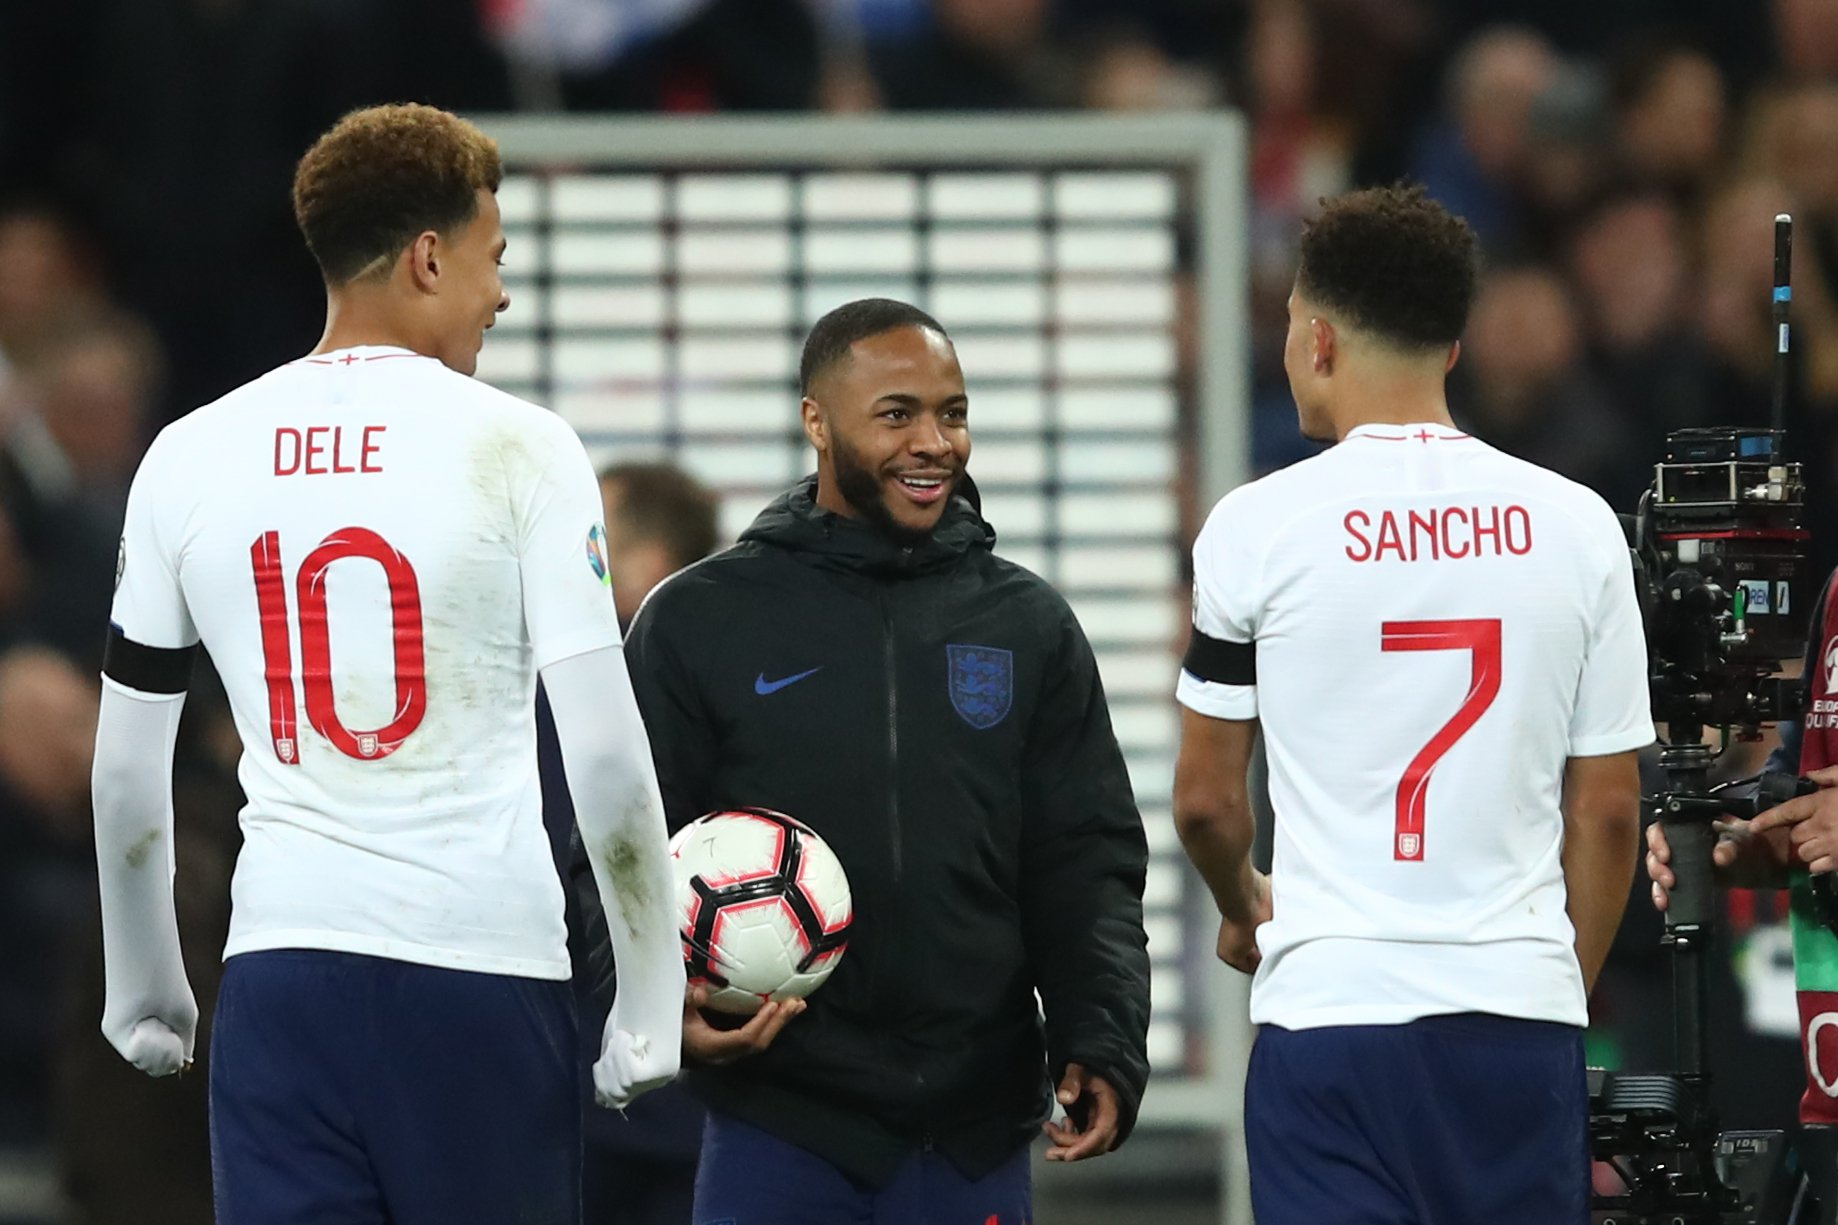 LONDON, ENGLAND - MARCH 22: Raheem Sterling of England walks off with the match ball as he speaks to Dele Alli and Jadon Sancho during the 2020 UEFA European Championships group A qualifying match between England and Czech Republic at Wembley Stadium on March 22, 2019 in London, United Kingdom. (Photo by Marc Atkins/Getty Images)